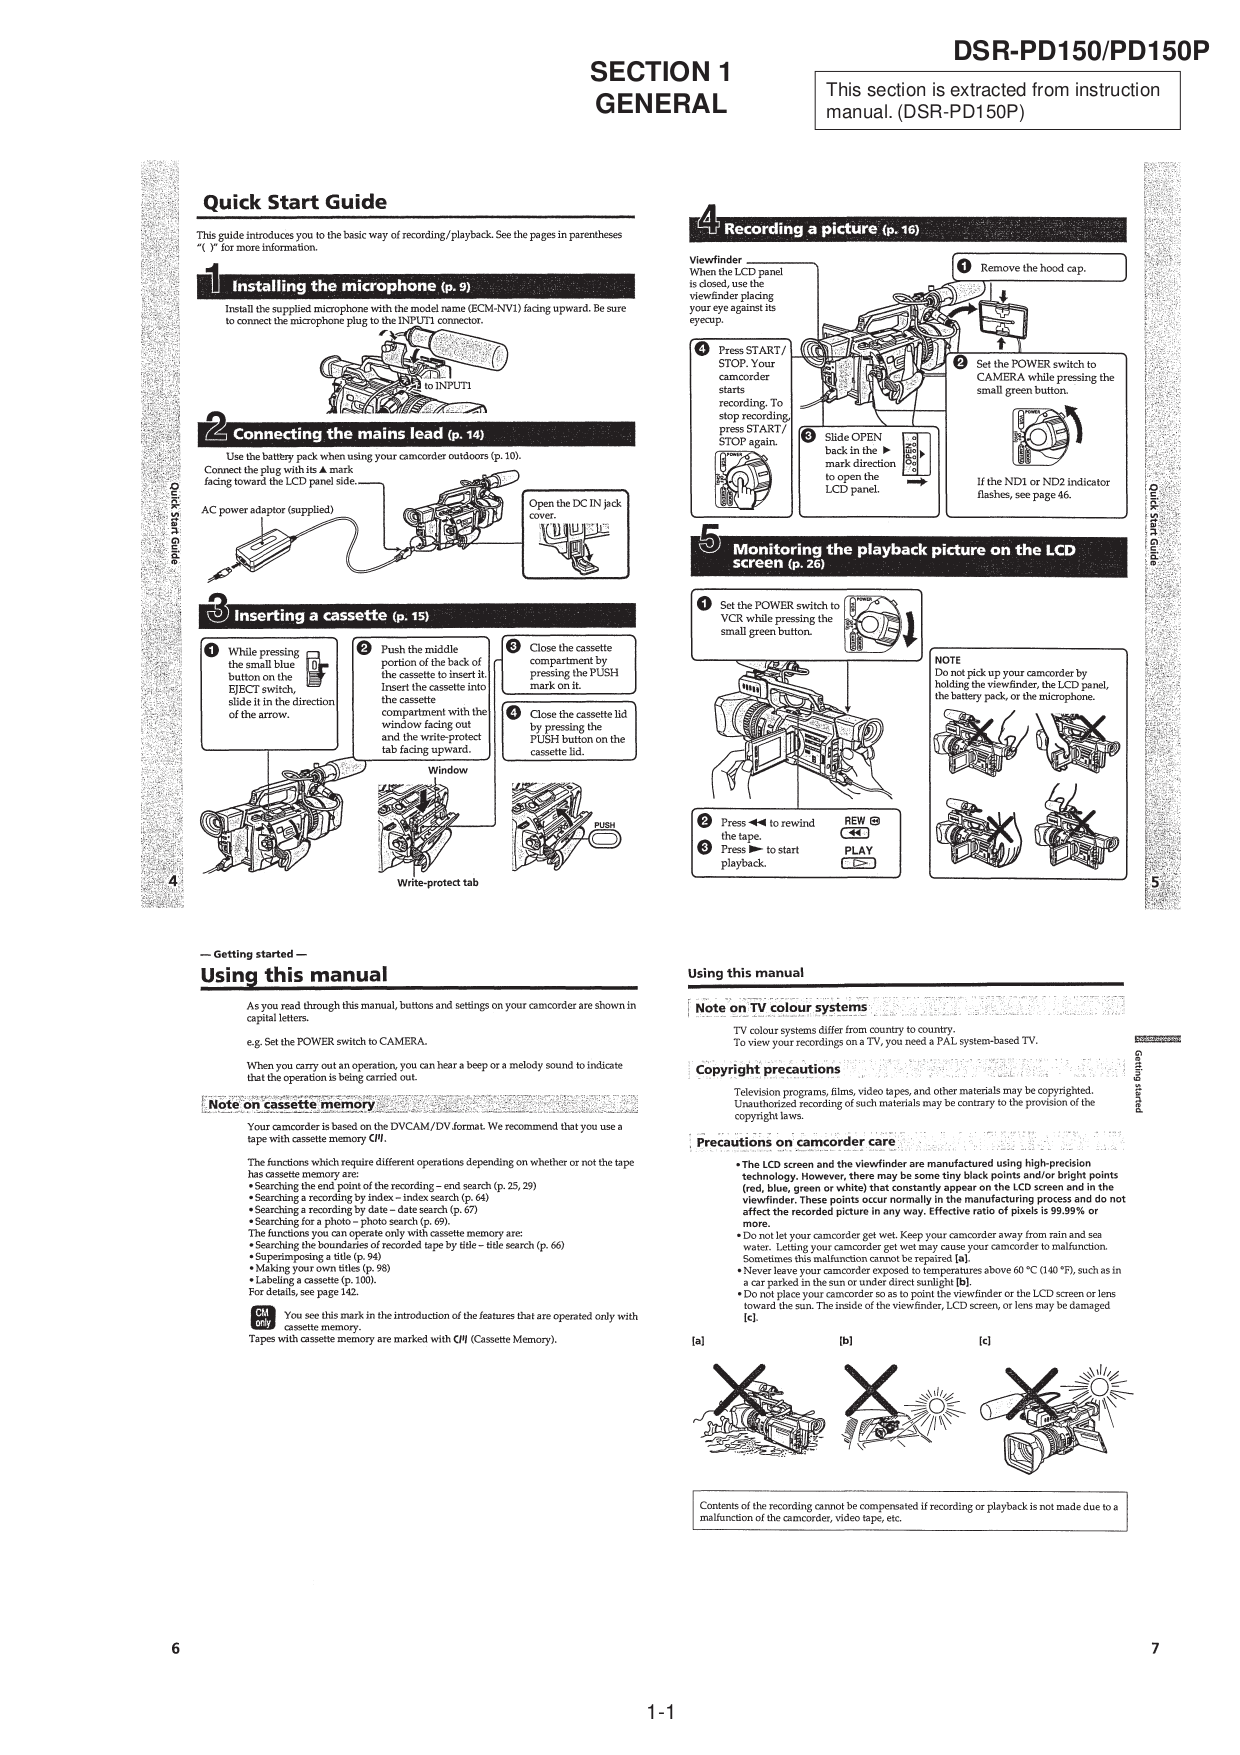 SONY DSR-PD150 MANUAL DOWNLOAD